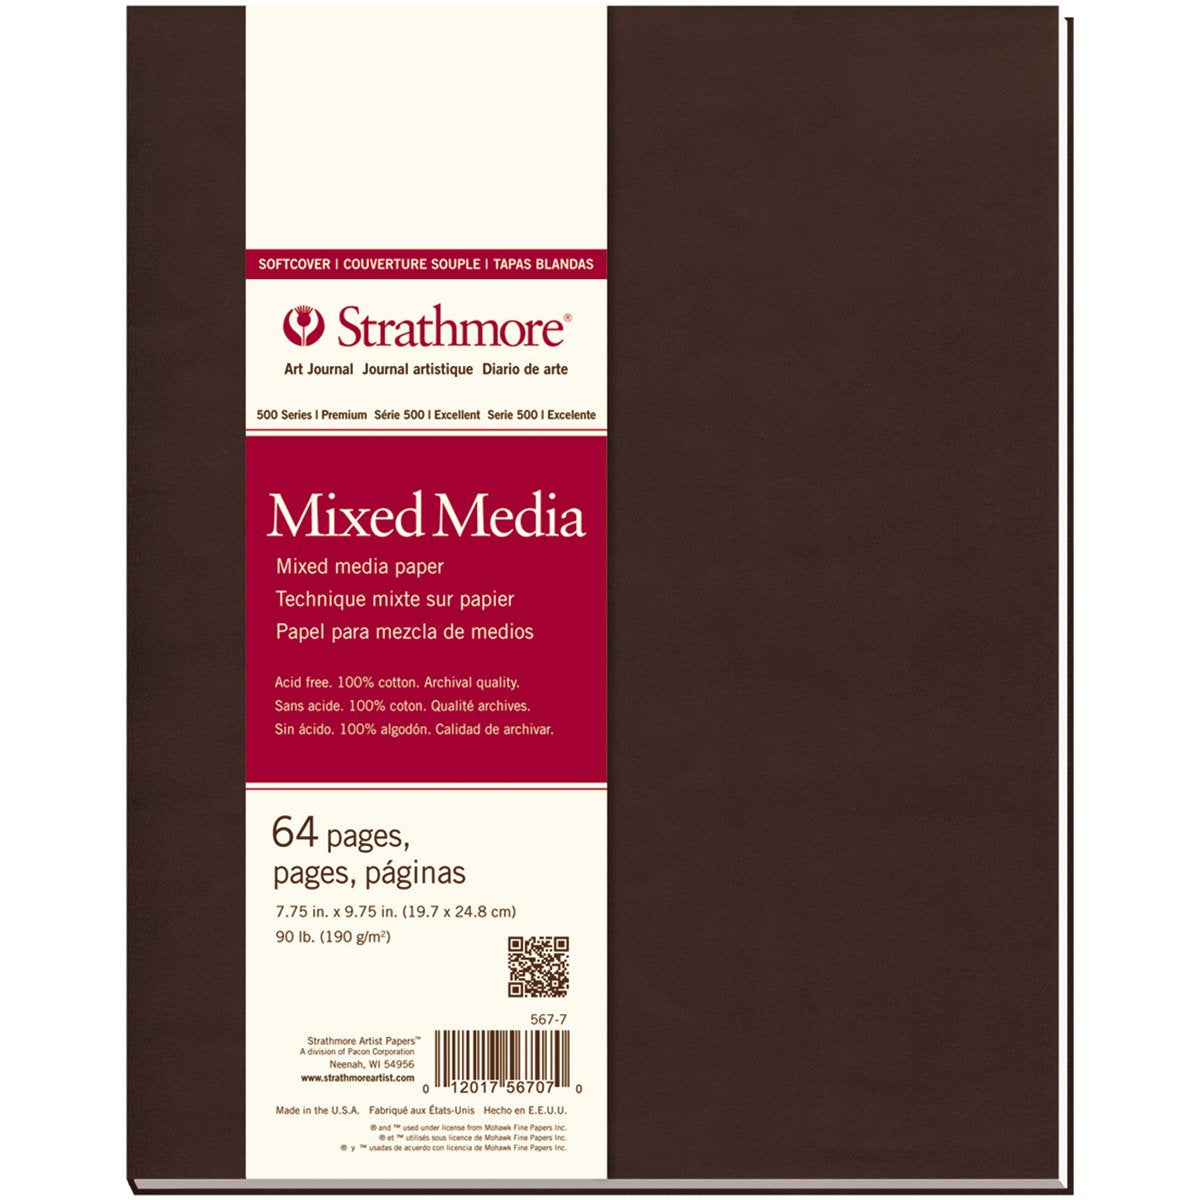 Strathmore Mixed Media Art Journal - 500 series - Soft Cover